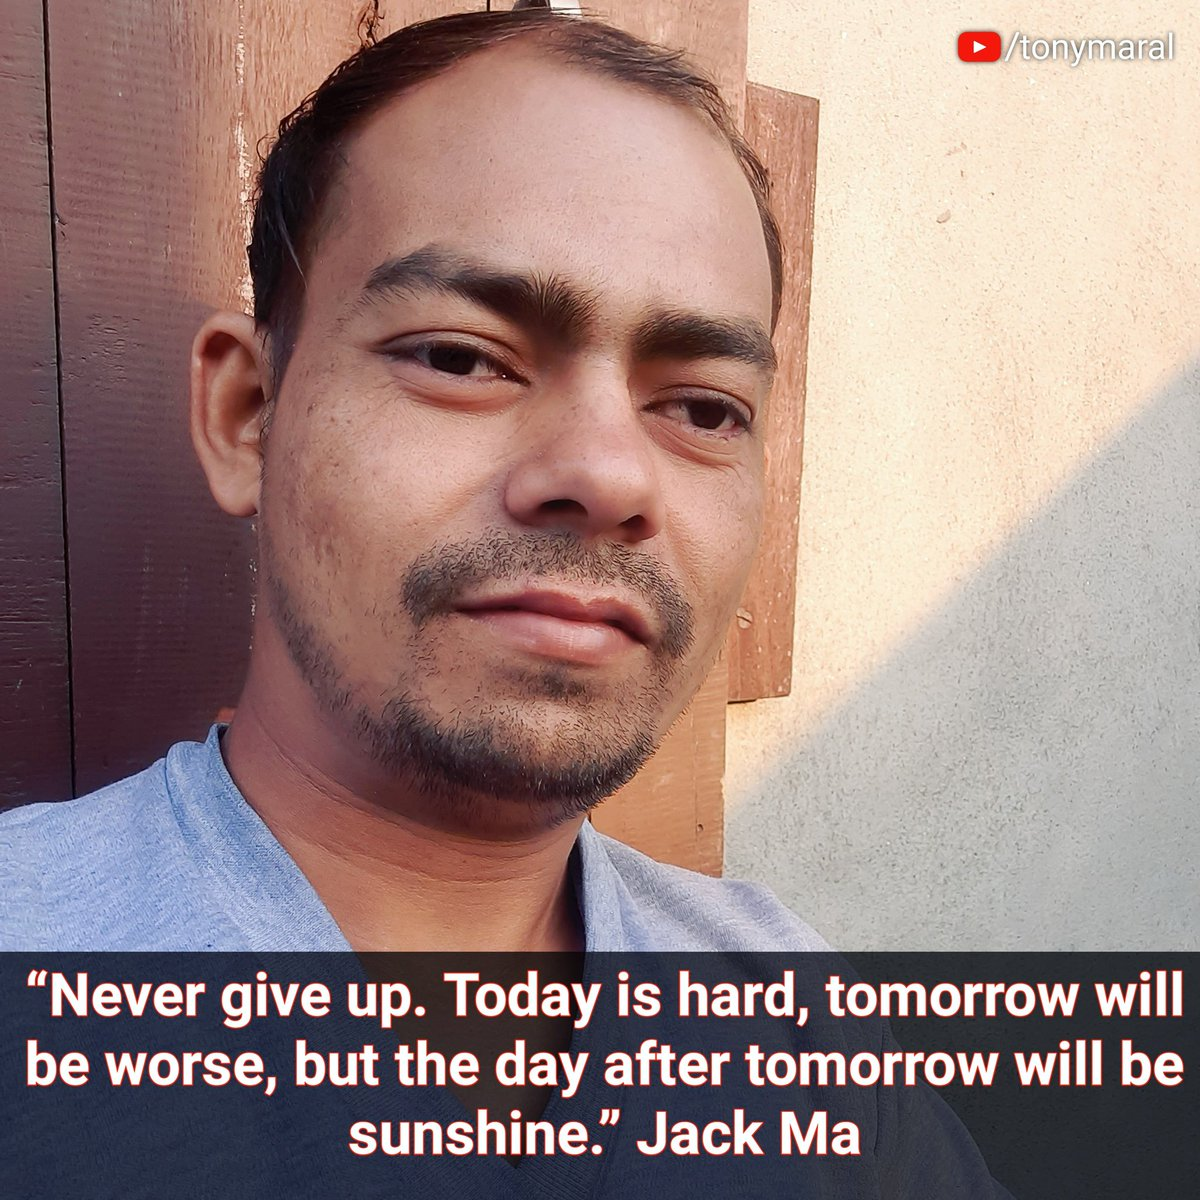 """Never give up. Today is hard, tomorrow will be worse, but the day after tomorrow will be sunshine."" Jack Ma  ""कभी हार मत मानो। आज कठिन है, कल और भी बदतर होगा, लेकिन कल के बाद का दिन धूप होगा। "" जैक मा  #BetterTogether #FridayThoughts #fridaymorning #entrepreneur"